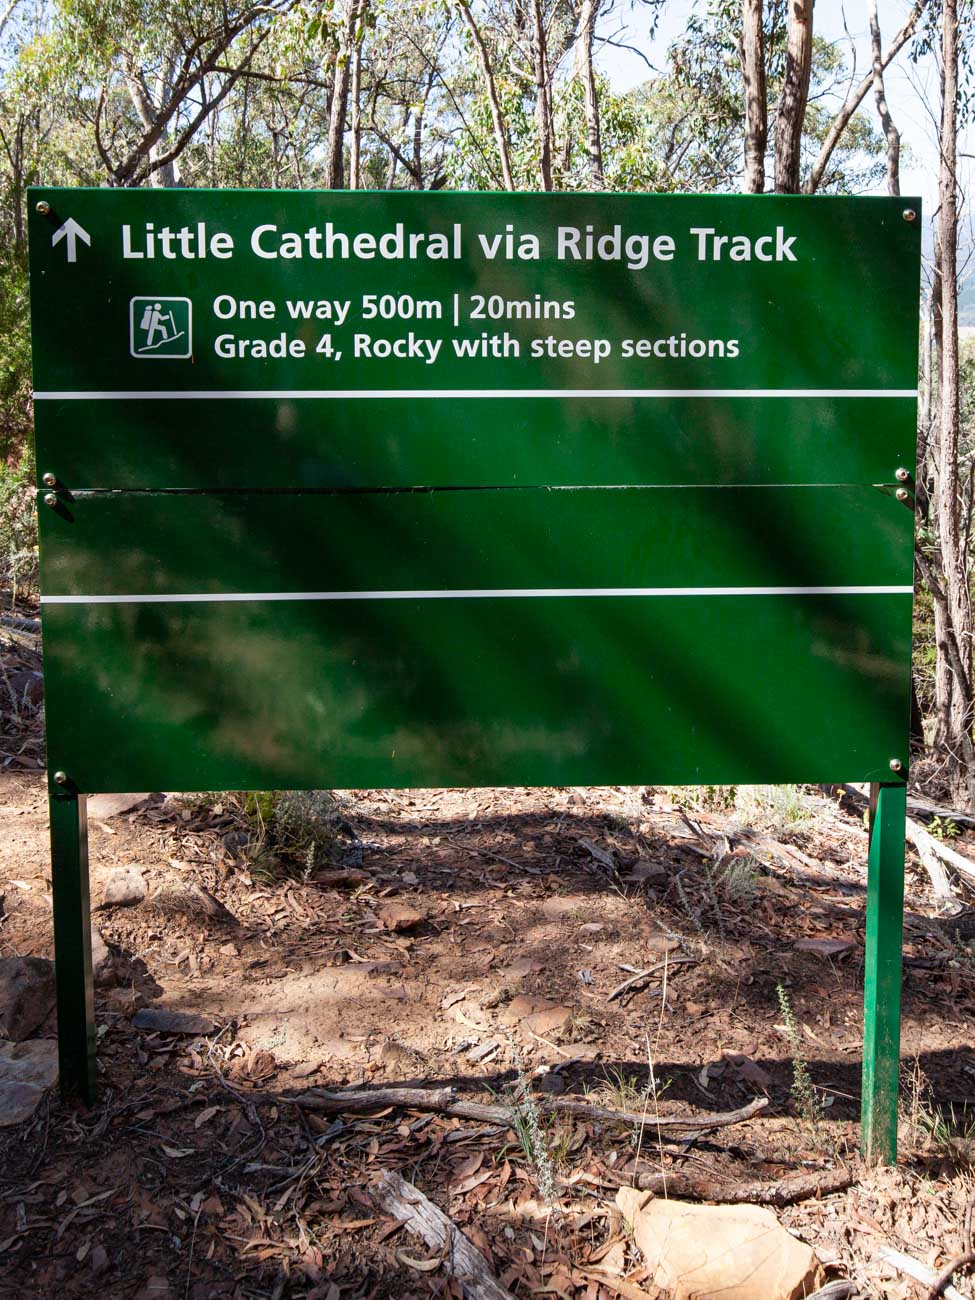 Cathedral Range - Ridgeline Circuit signage close to Little Cathedral 1